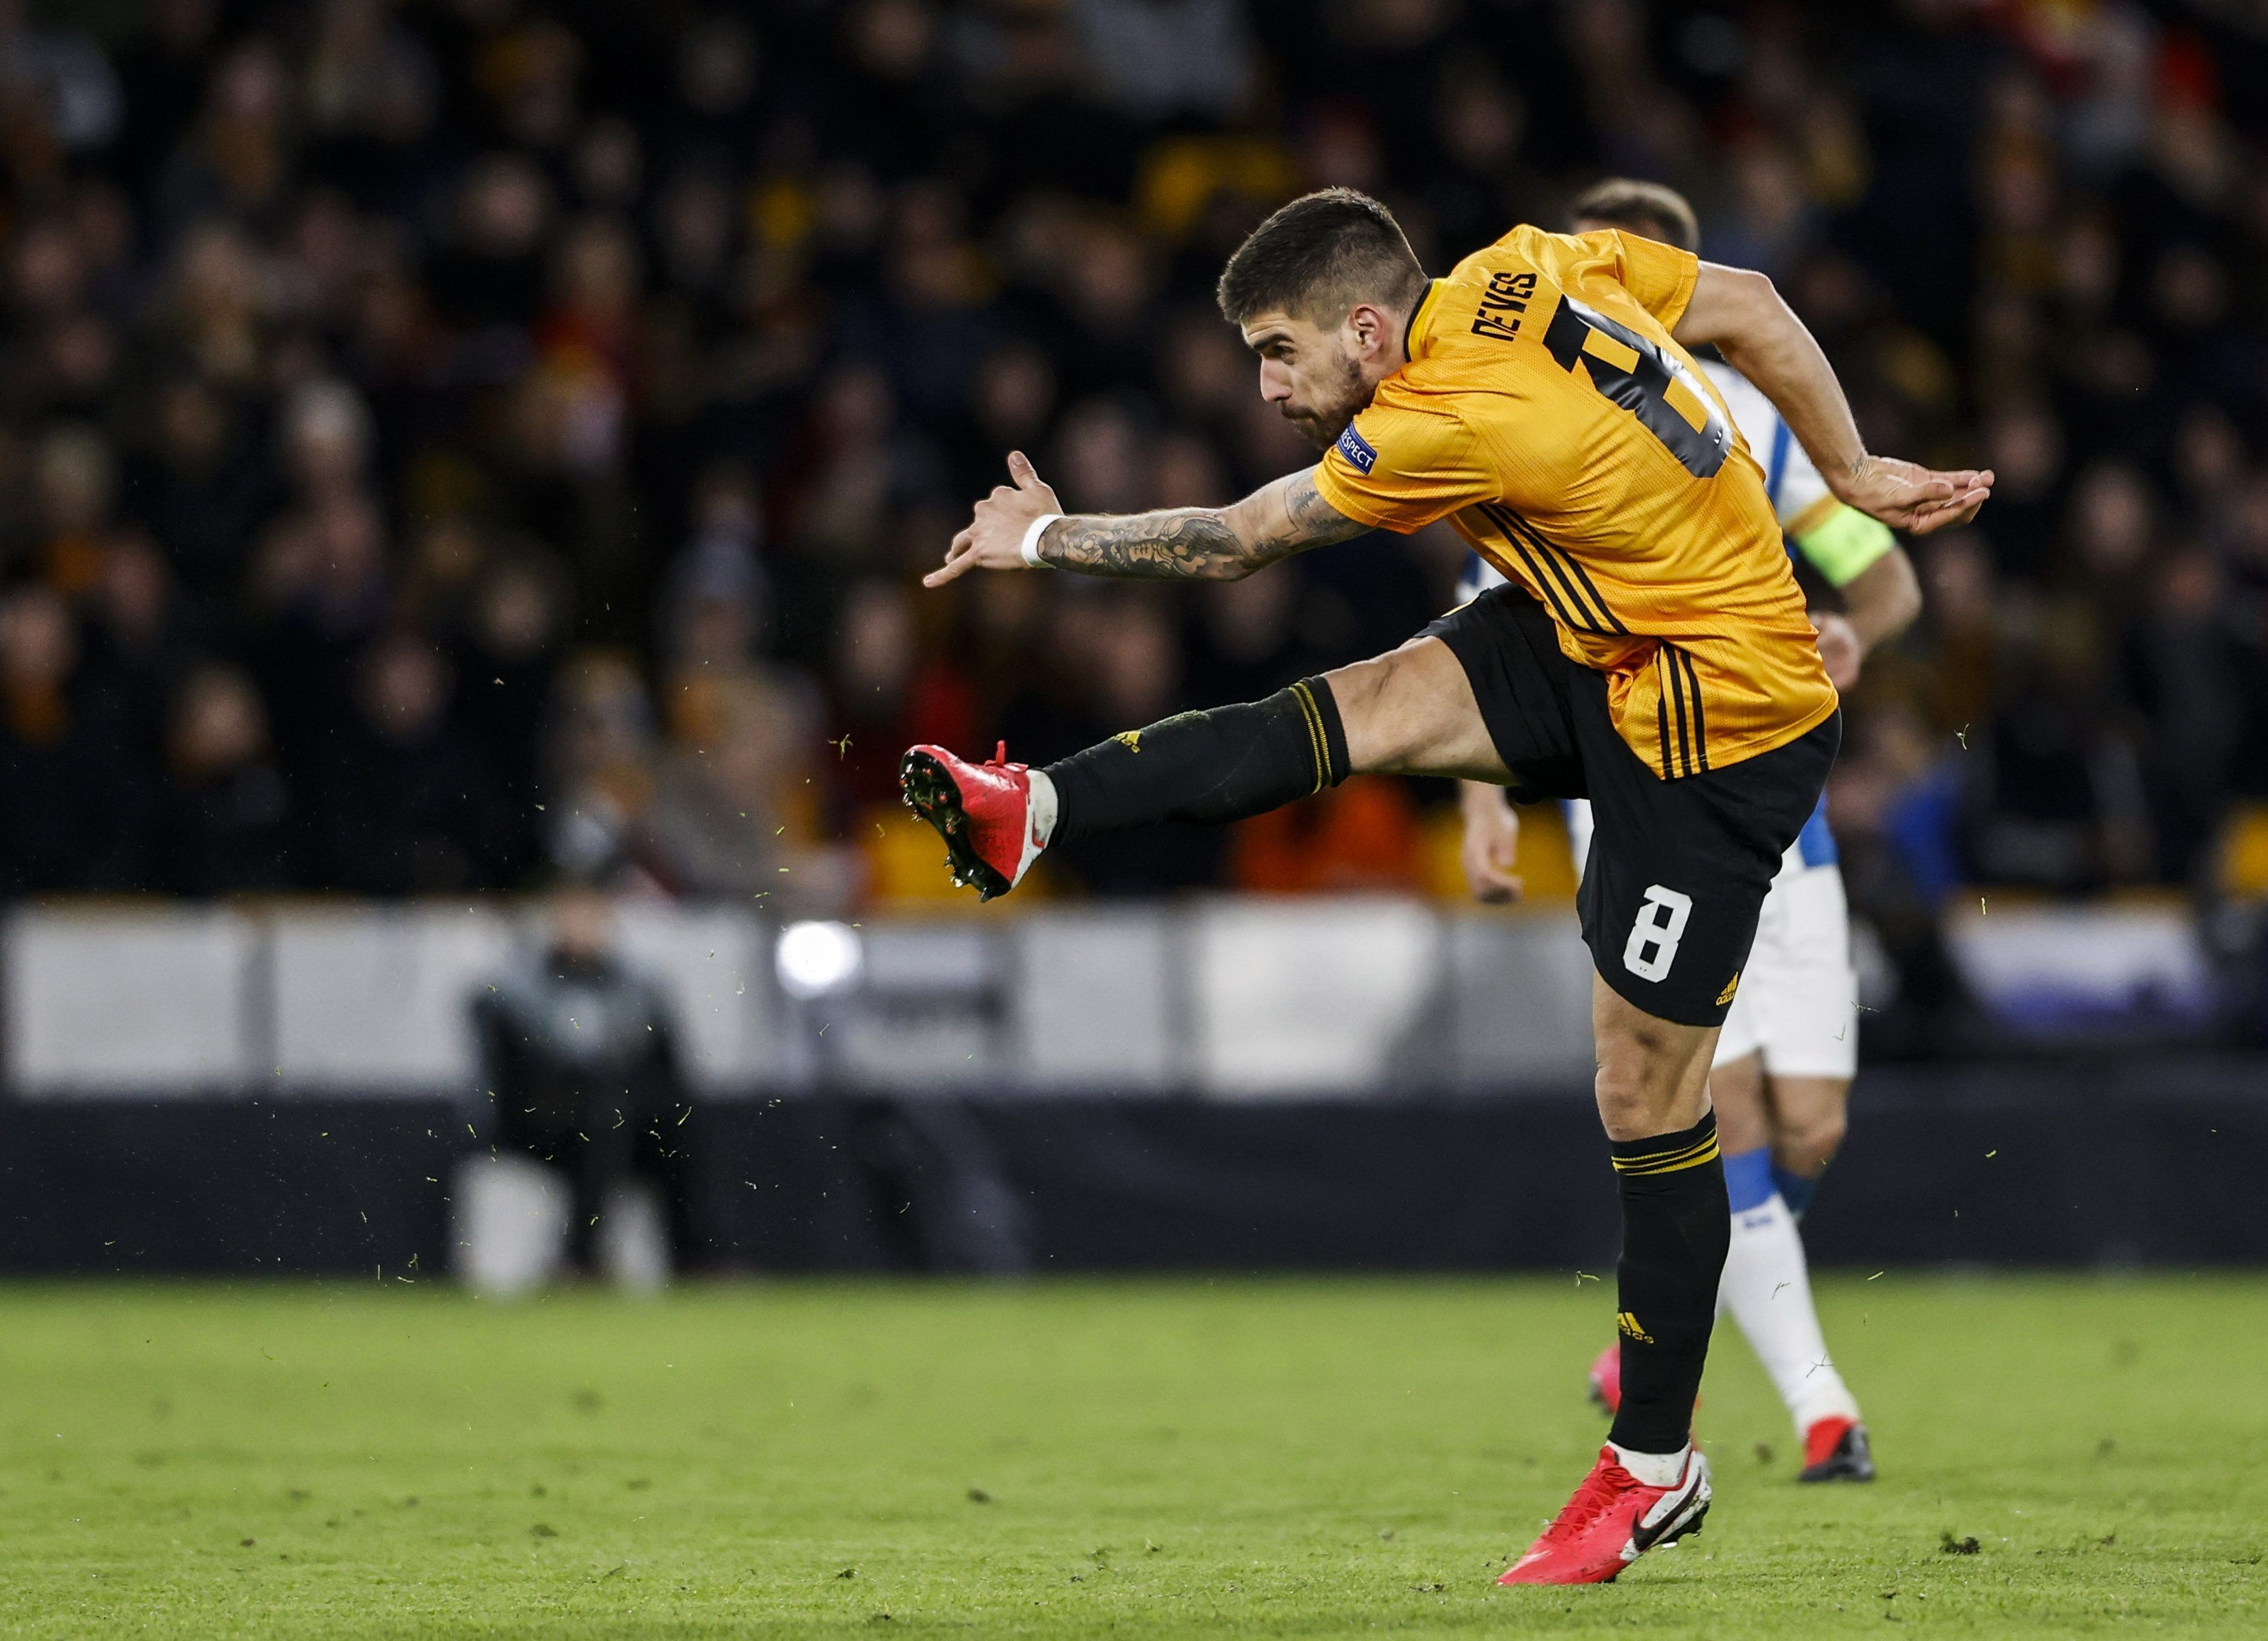 Espanyol Vs Wolves Free Live Stream Tv Channel Kick Off Time And Team News For Europa League Football Soccer Sports Futbo Europa League Tv Channel League